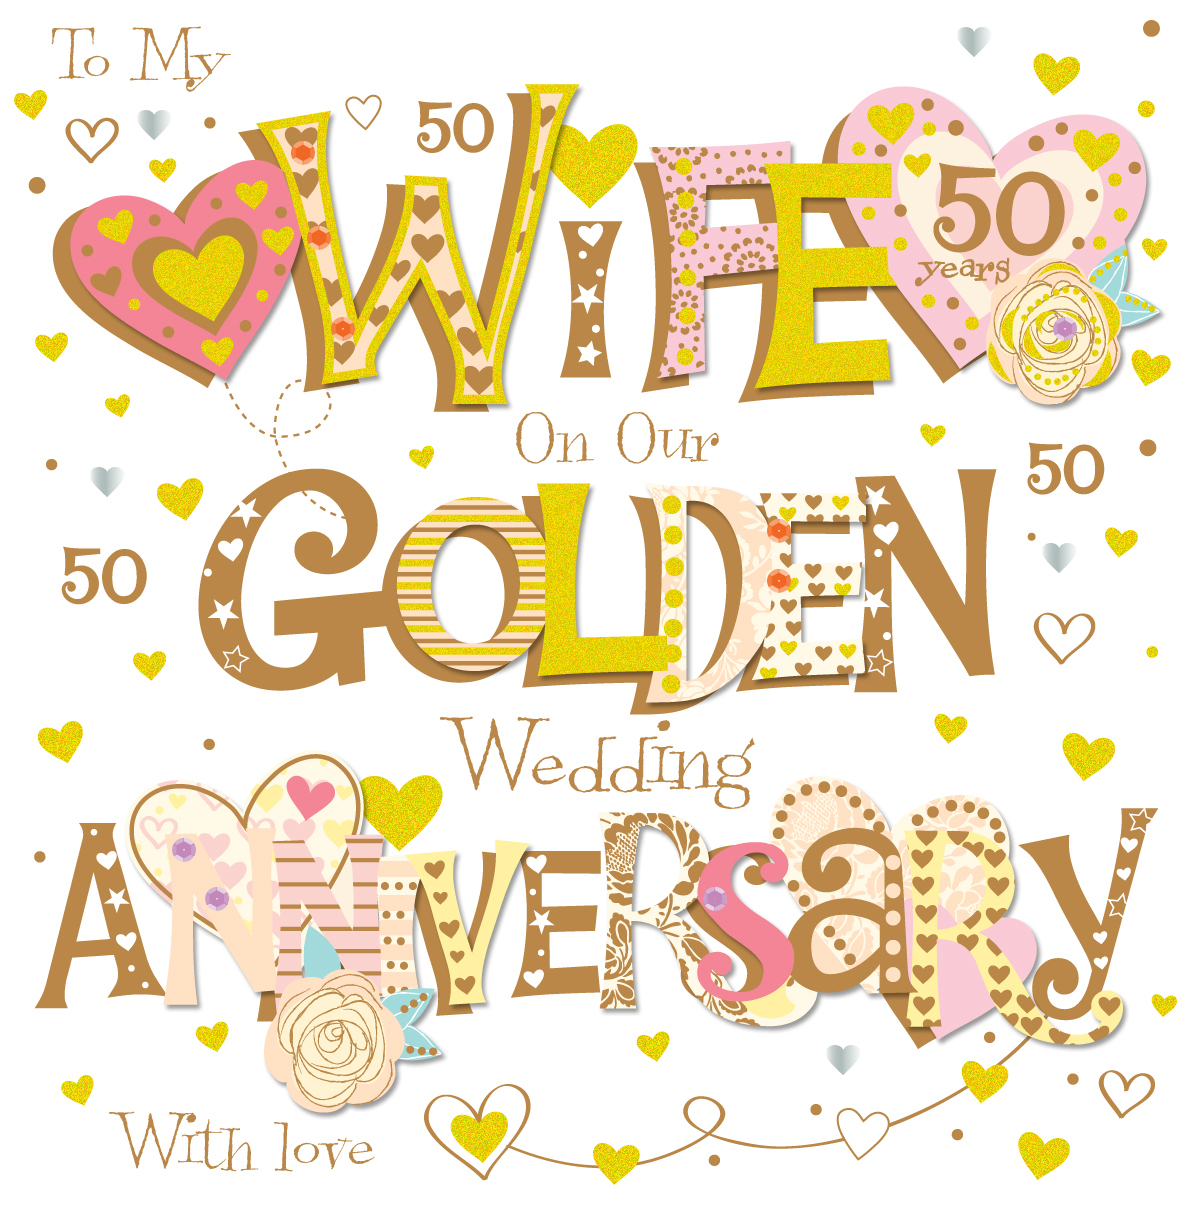 Wife Golden 50th Wedding Anniversary Greeting Card   Cards   Love Kates